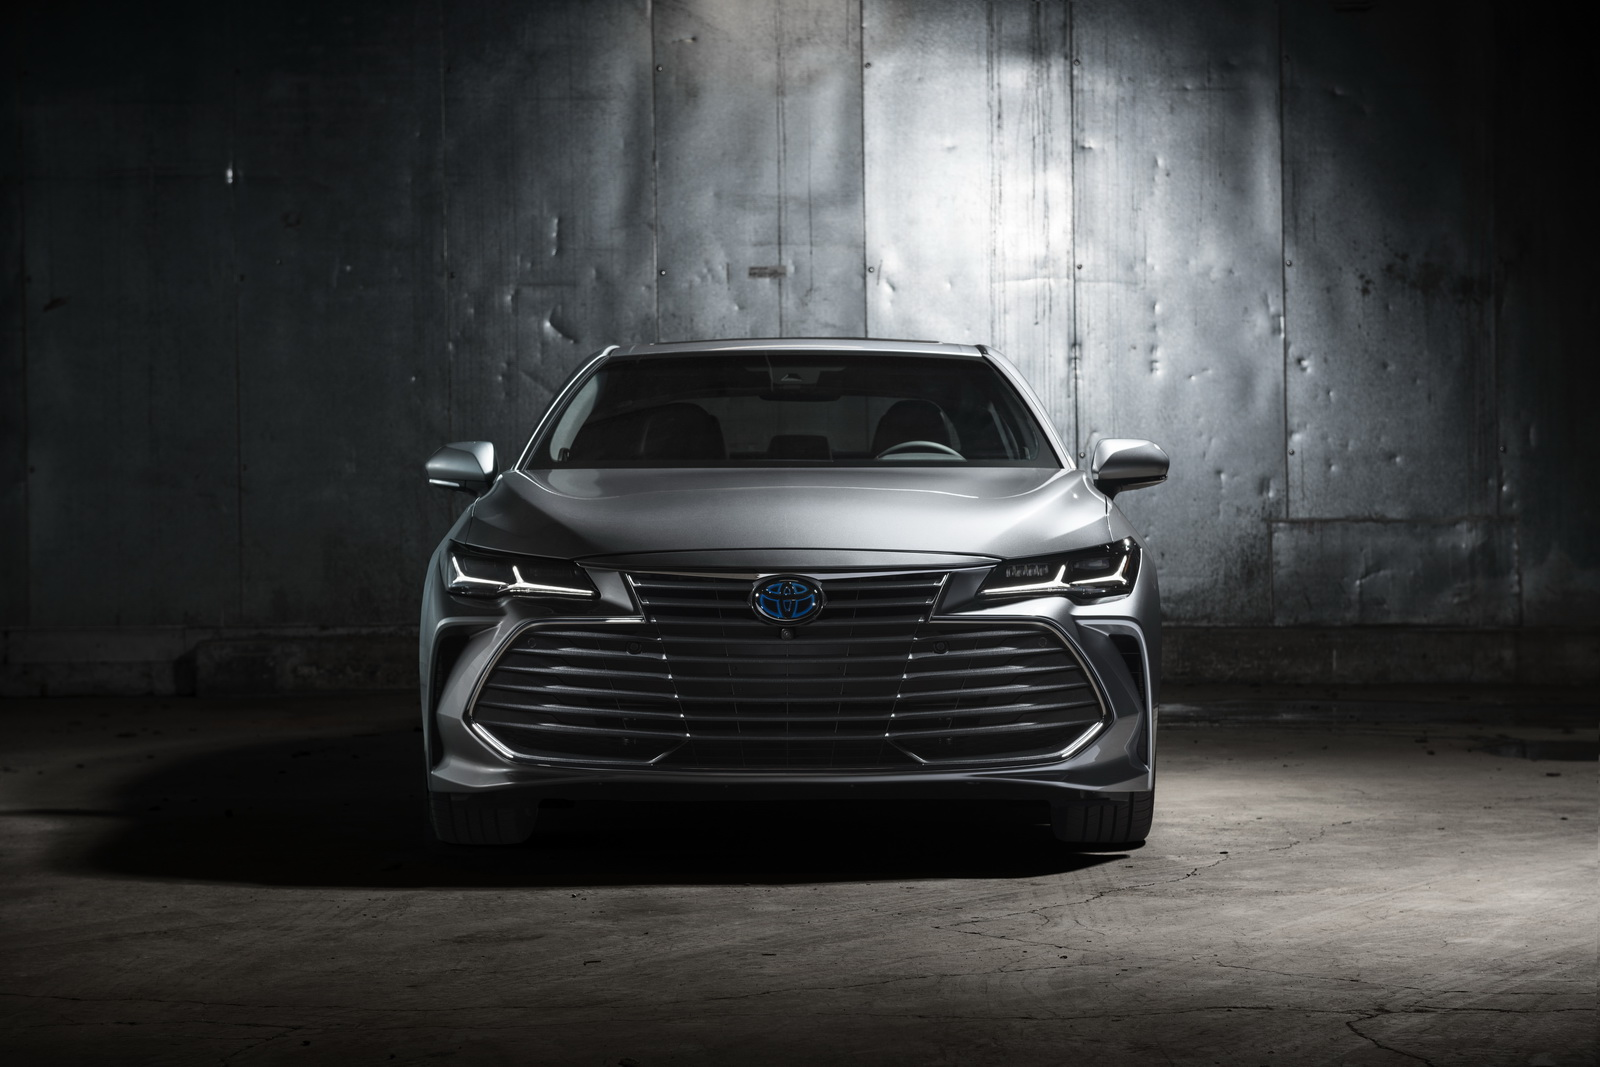 The new Avalon 2019 is being unveiled in Detroit The new Avalon 2019 is being unveiled in Detroit  D8 A7 D9 84 D8 AC D9 8A D9 84  D8 A7 D9 84 D8 AC D8 AF D9 8A D8 AF  D9 85 D9 86  D8 AA D9 88 D9 8A D9 88 D8 AA D8 A7  D8 A7 D9 81 D8 A7 D9 84 D9 88 D9 86 2019